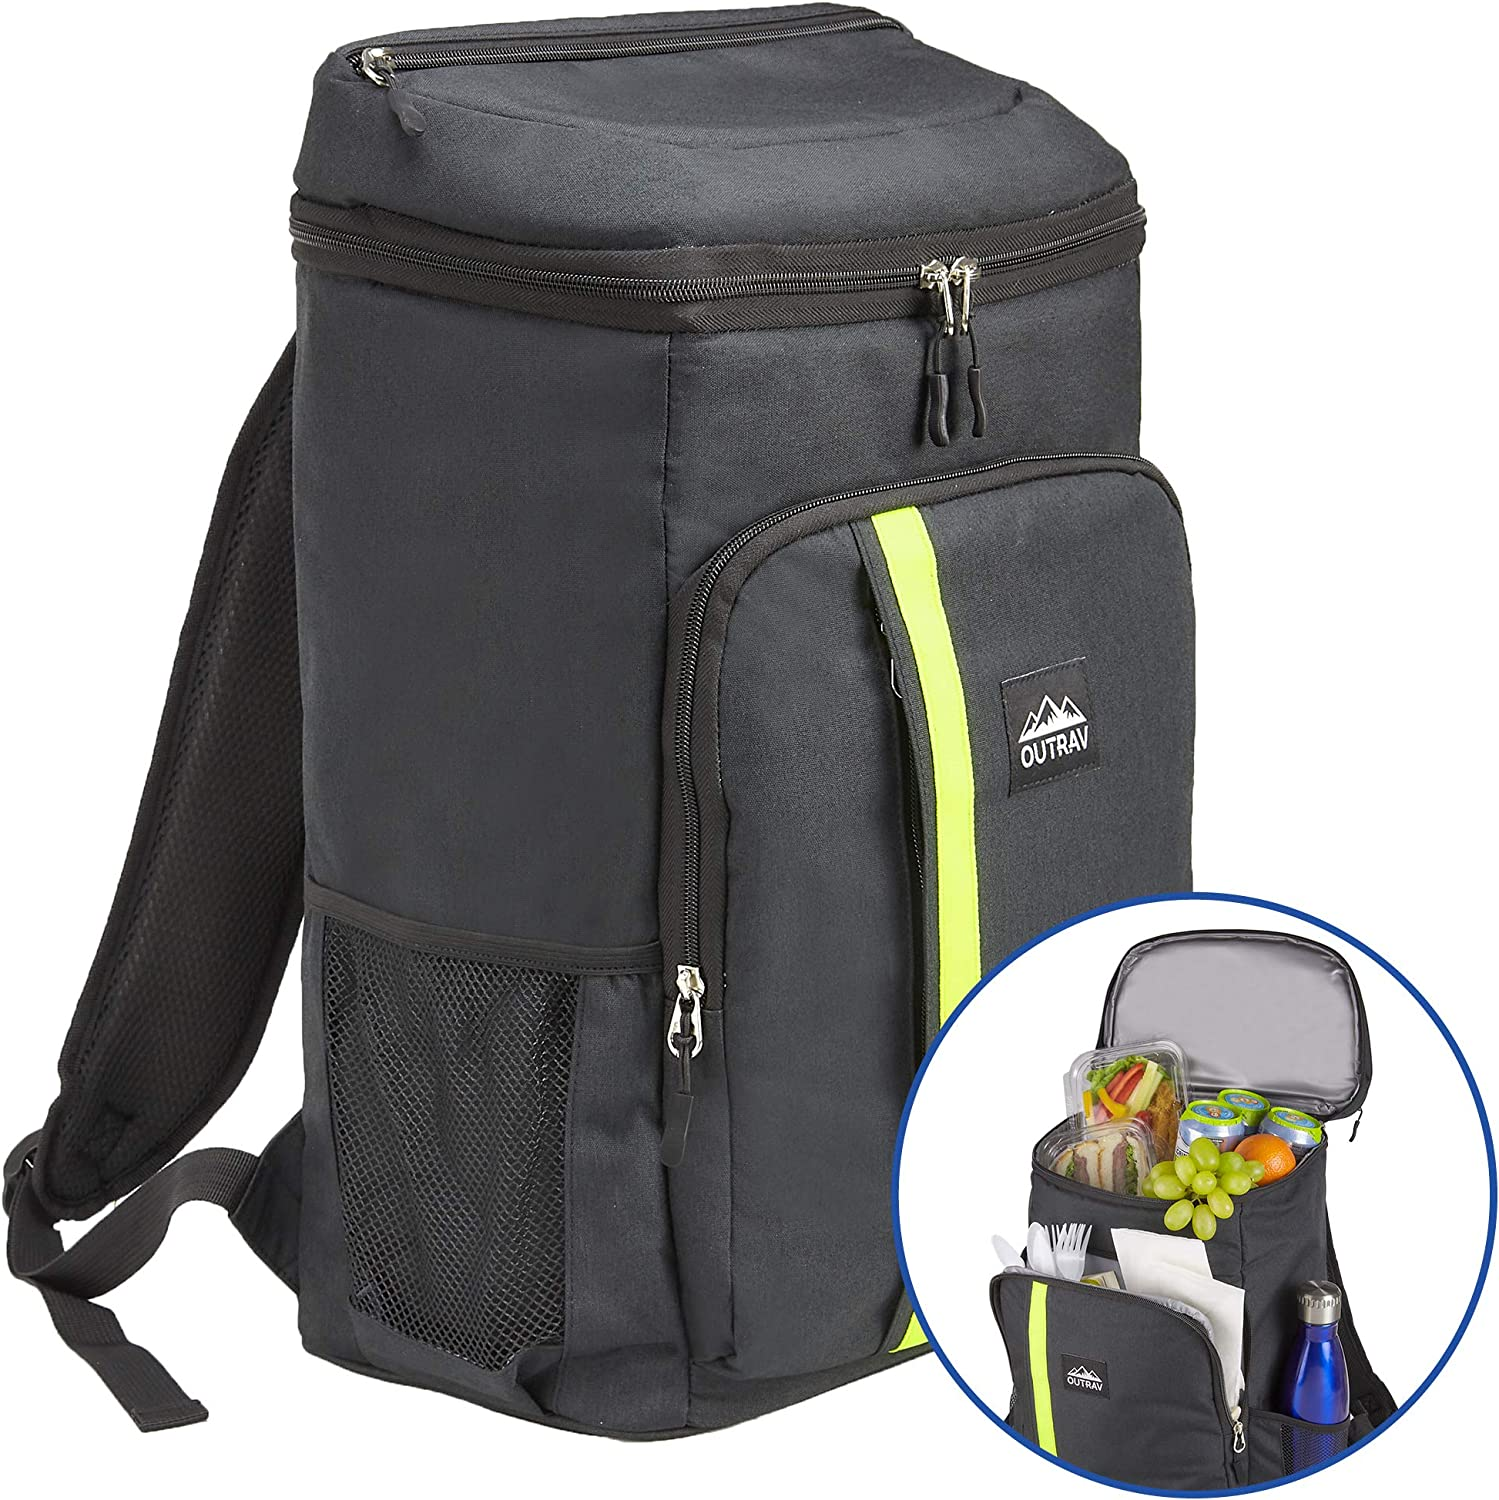 Outrav Camping Backpack Cooler  Fully Insulated Cooling Bag with Zippered Compartments, Mesh Pockets and Bottle Opener  24 Can Capacity